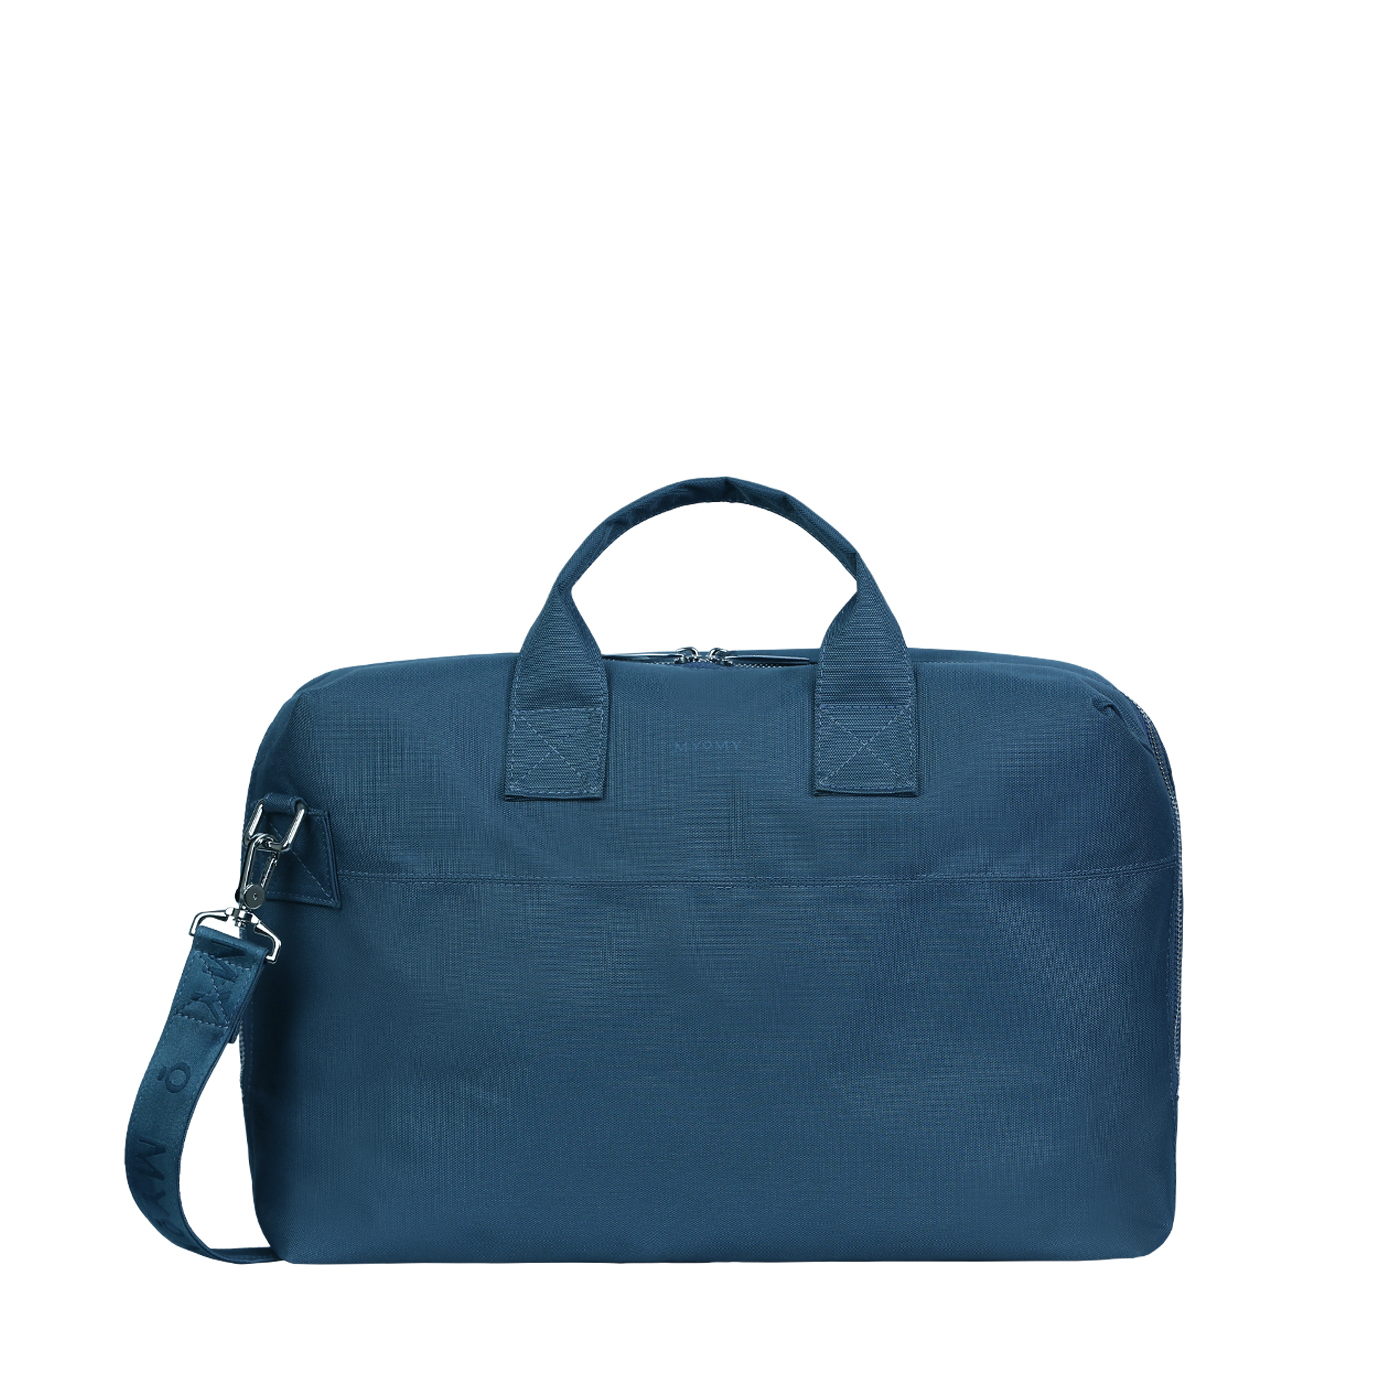 MY PHILIP BAG Business – RPET Blue